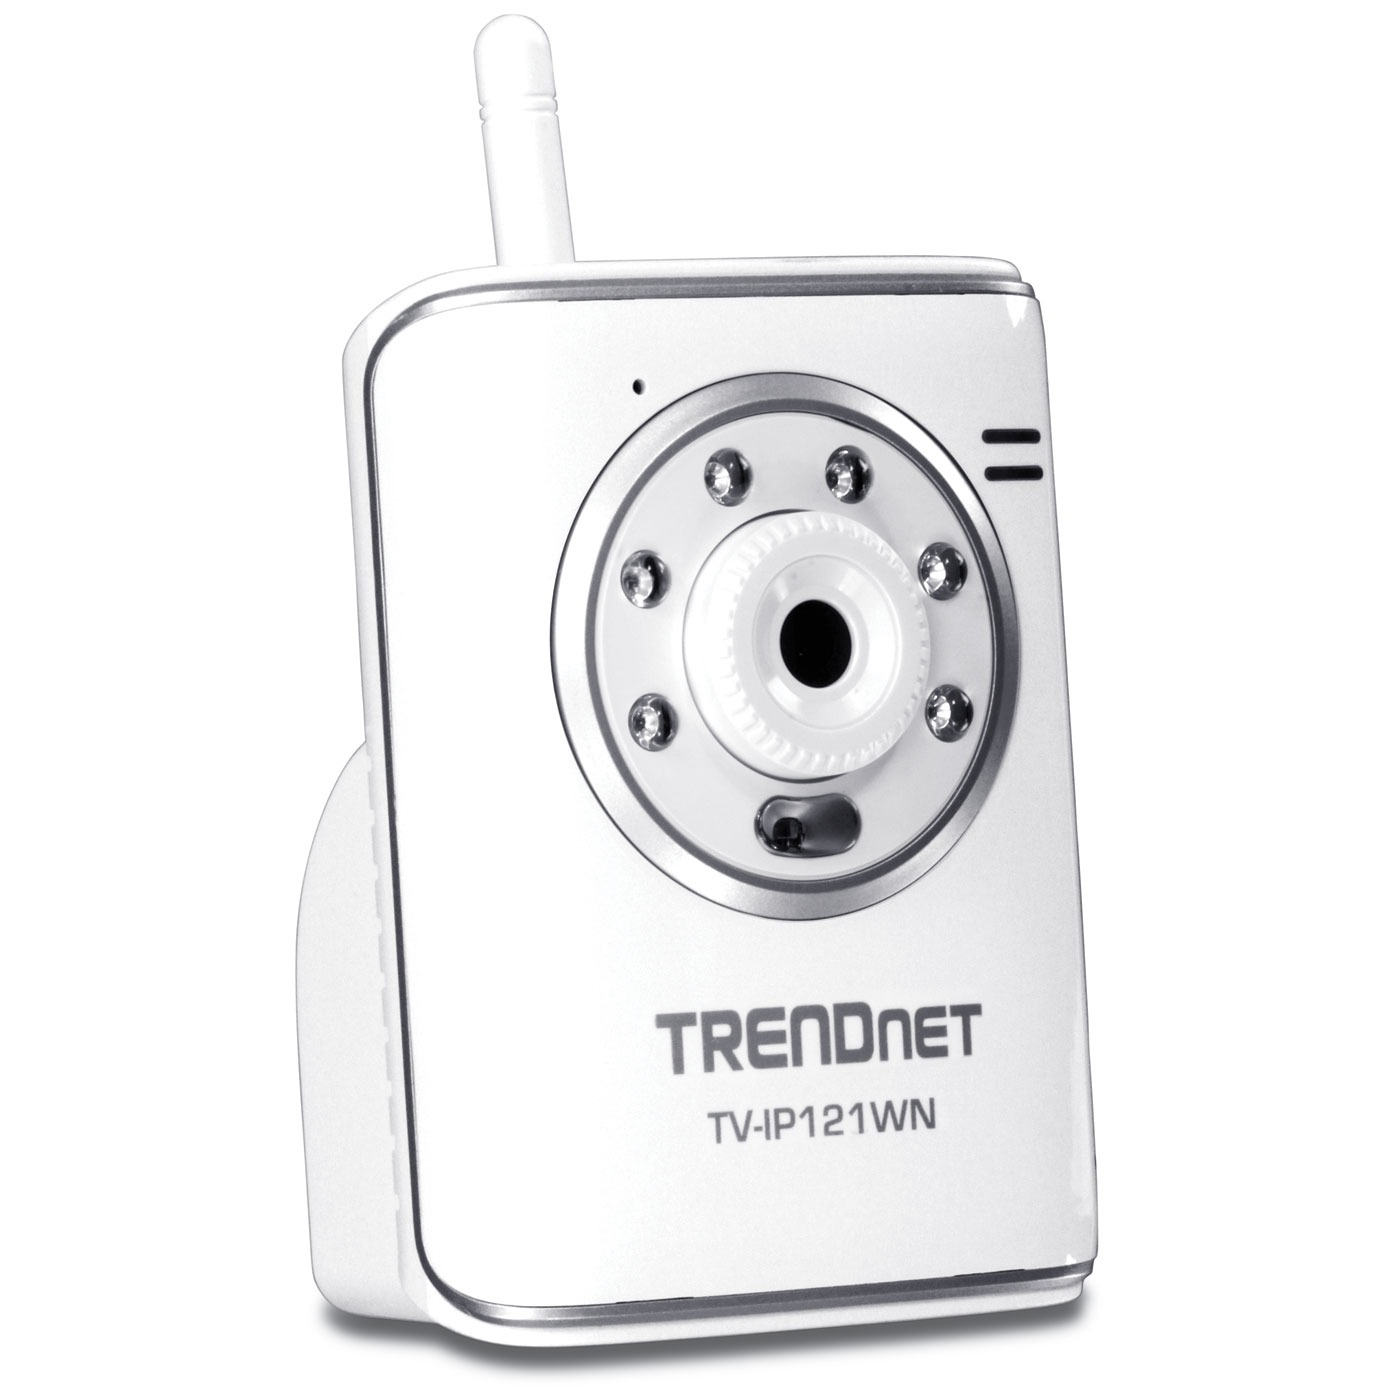 Caméra IP TRENDnet TV-IP121WN TRENDnet TV-IP121WN - Caméra IP jour/nuit WiFi N SecureView